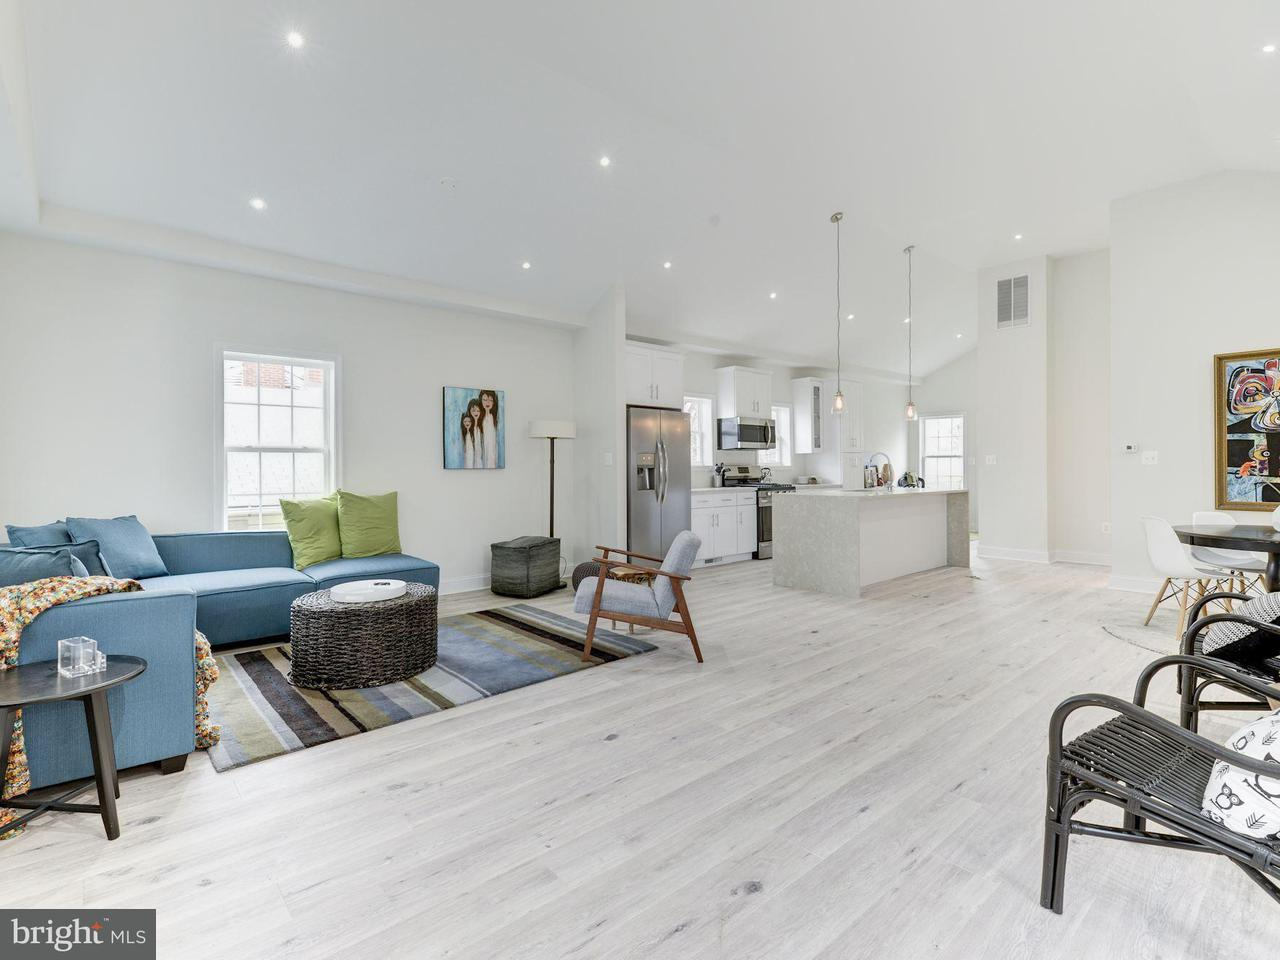 Single Family for Sale at 265 56th Pl NE Washington, District Of Columbia 20019 United States